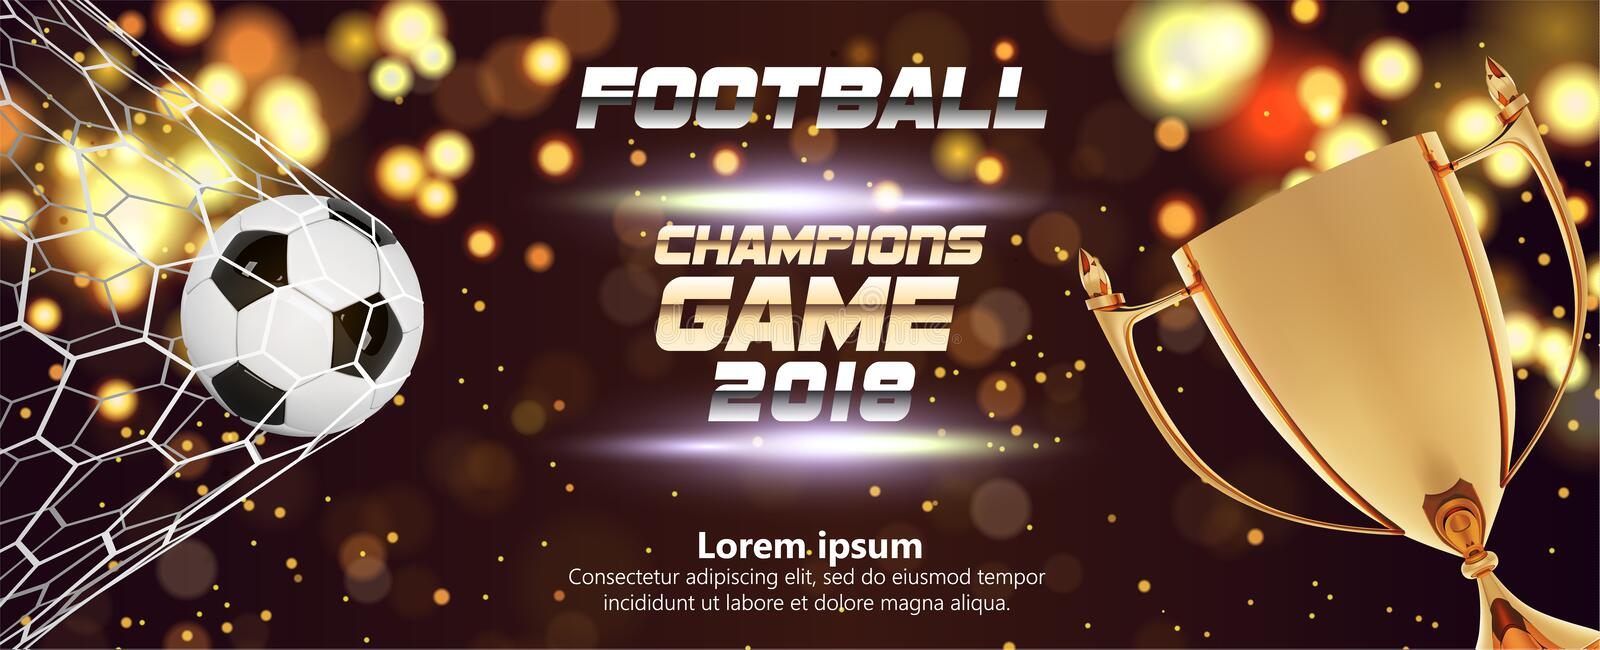 Soccer or Football wide Banner With 3d Ball on sparkling golden background. Soccer game match fire goal moment with ball. In the net, golden trophy and place stock illustration